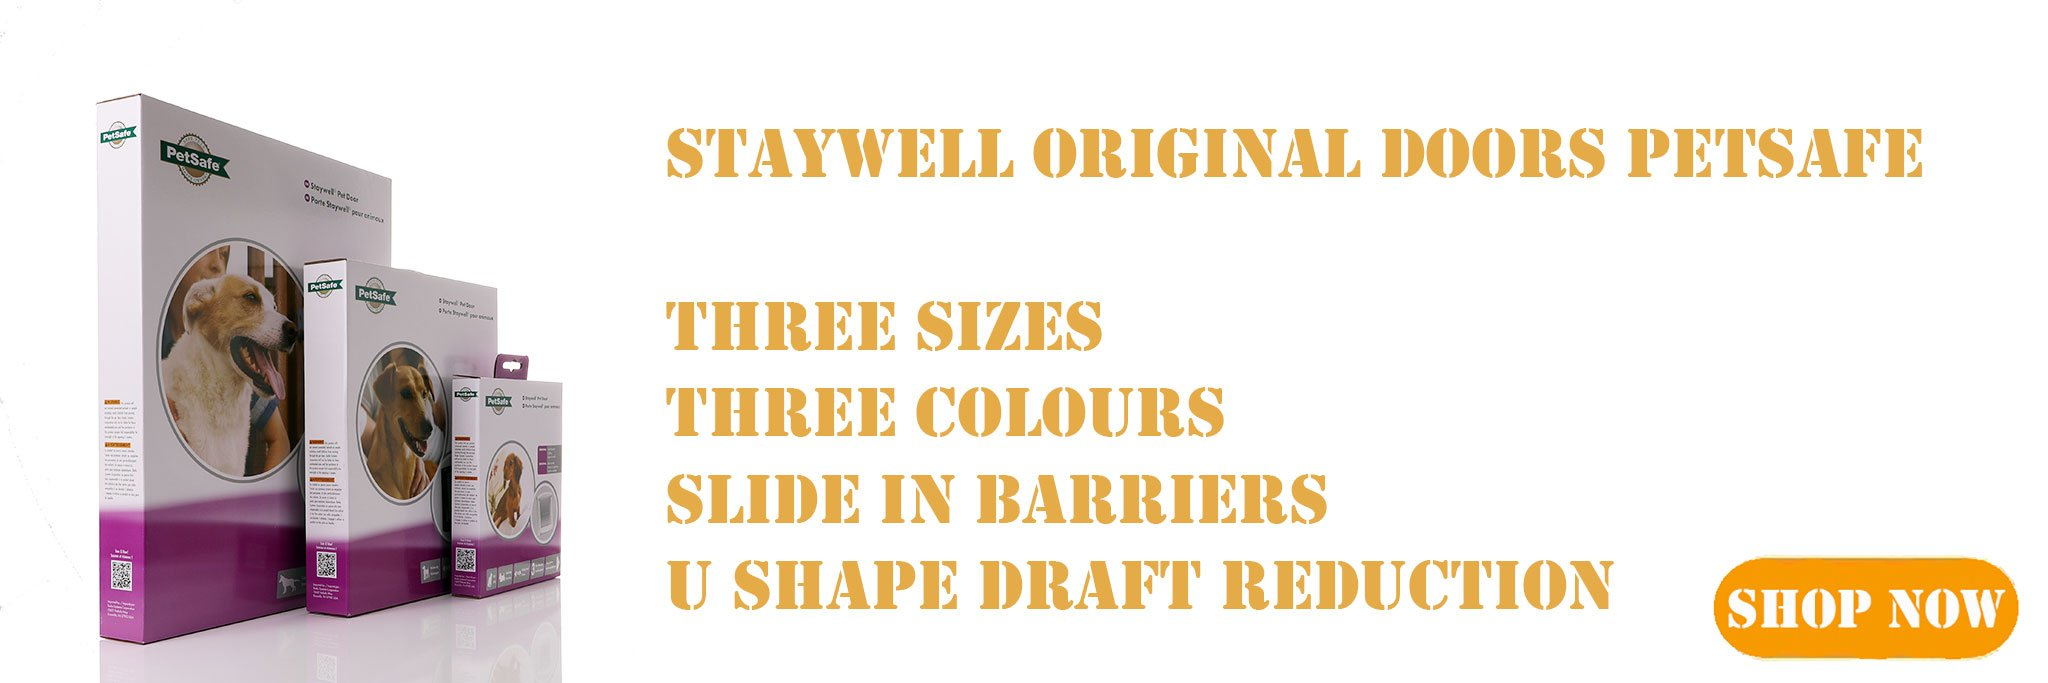 The staywell original doors come in thre colours white brown and grey